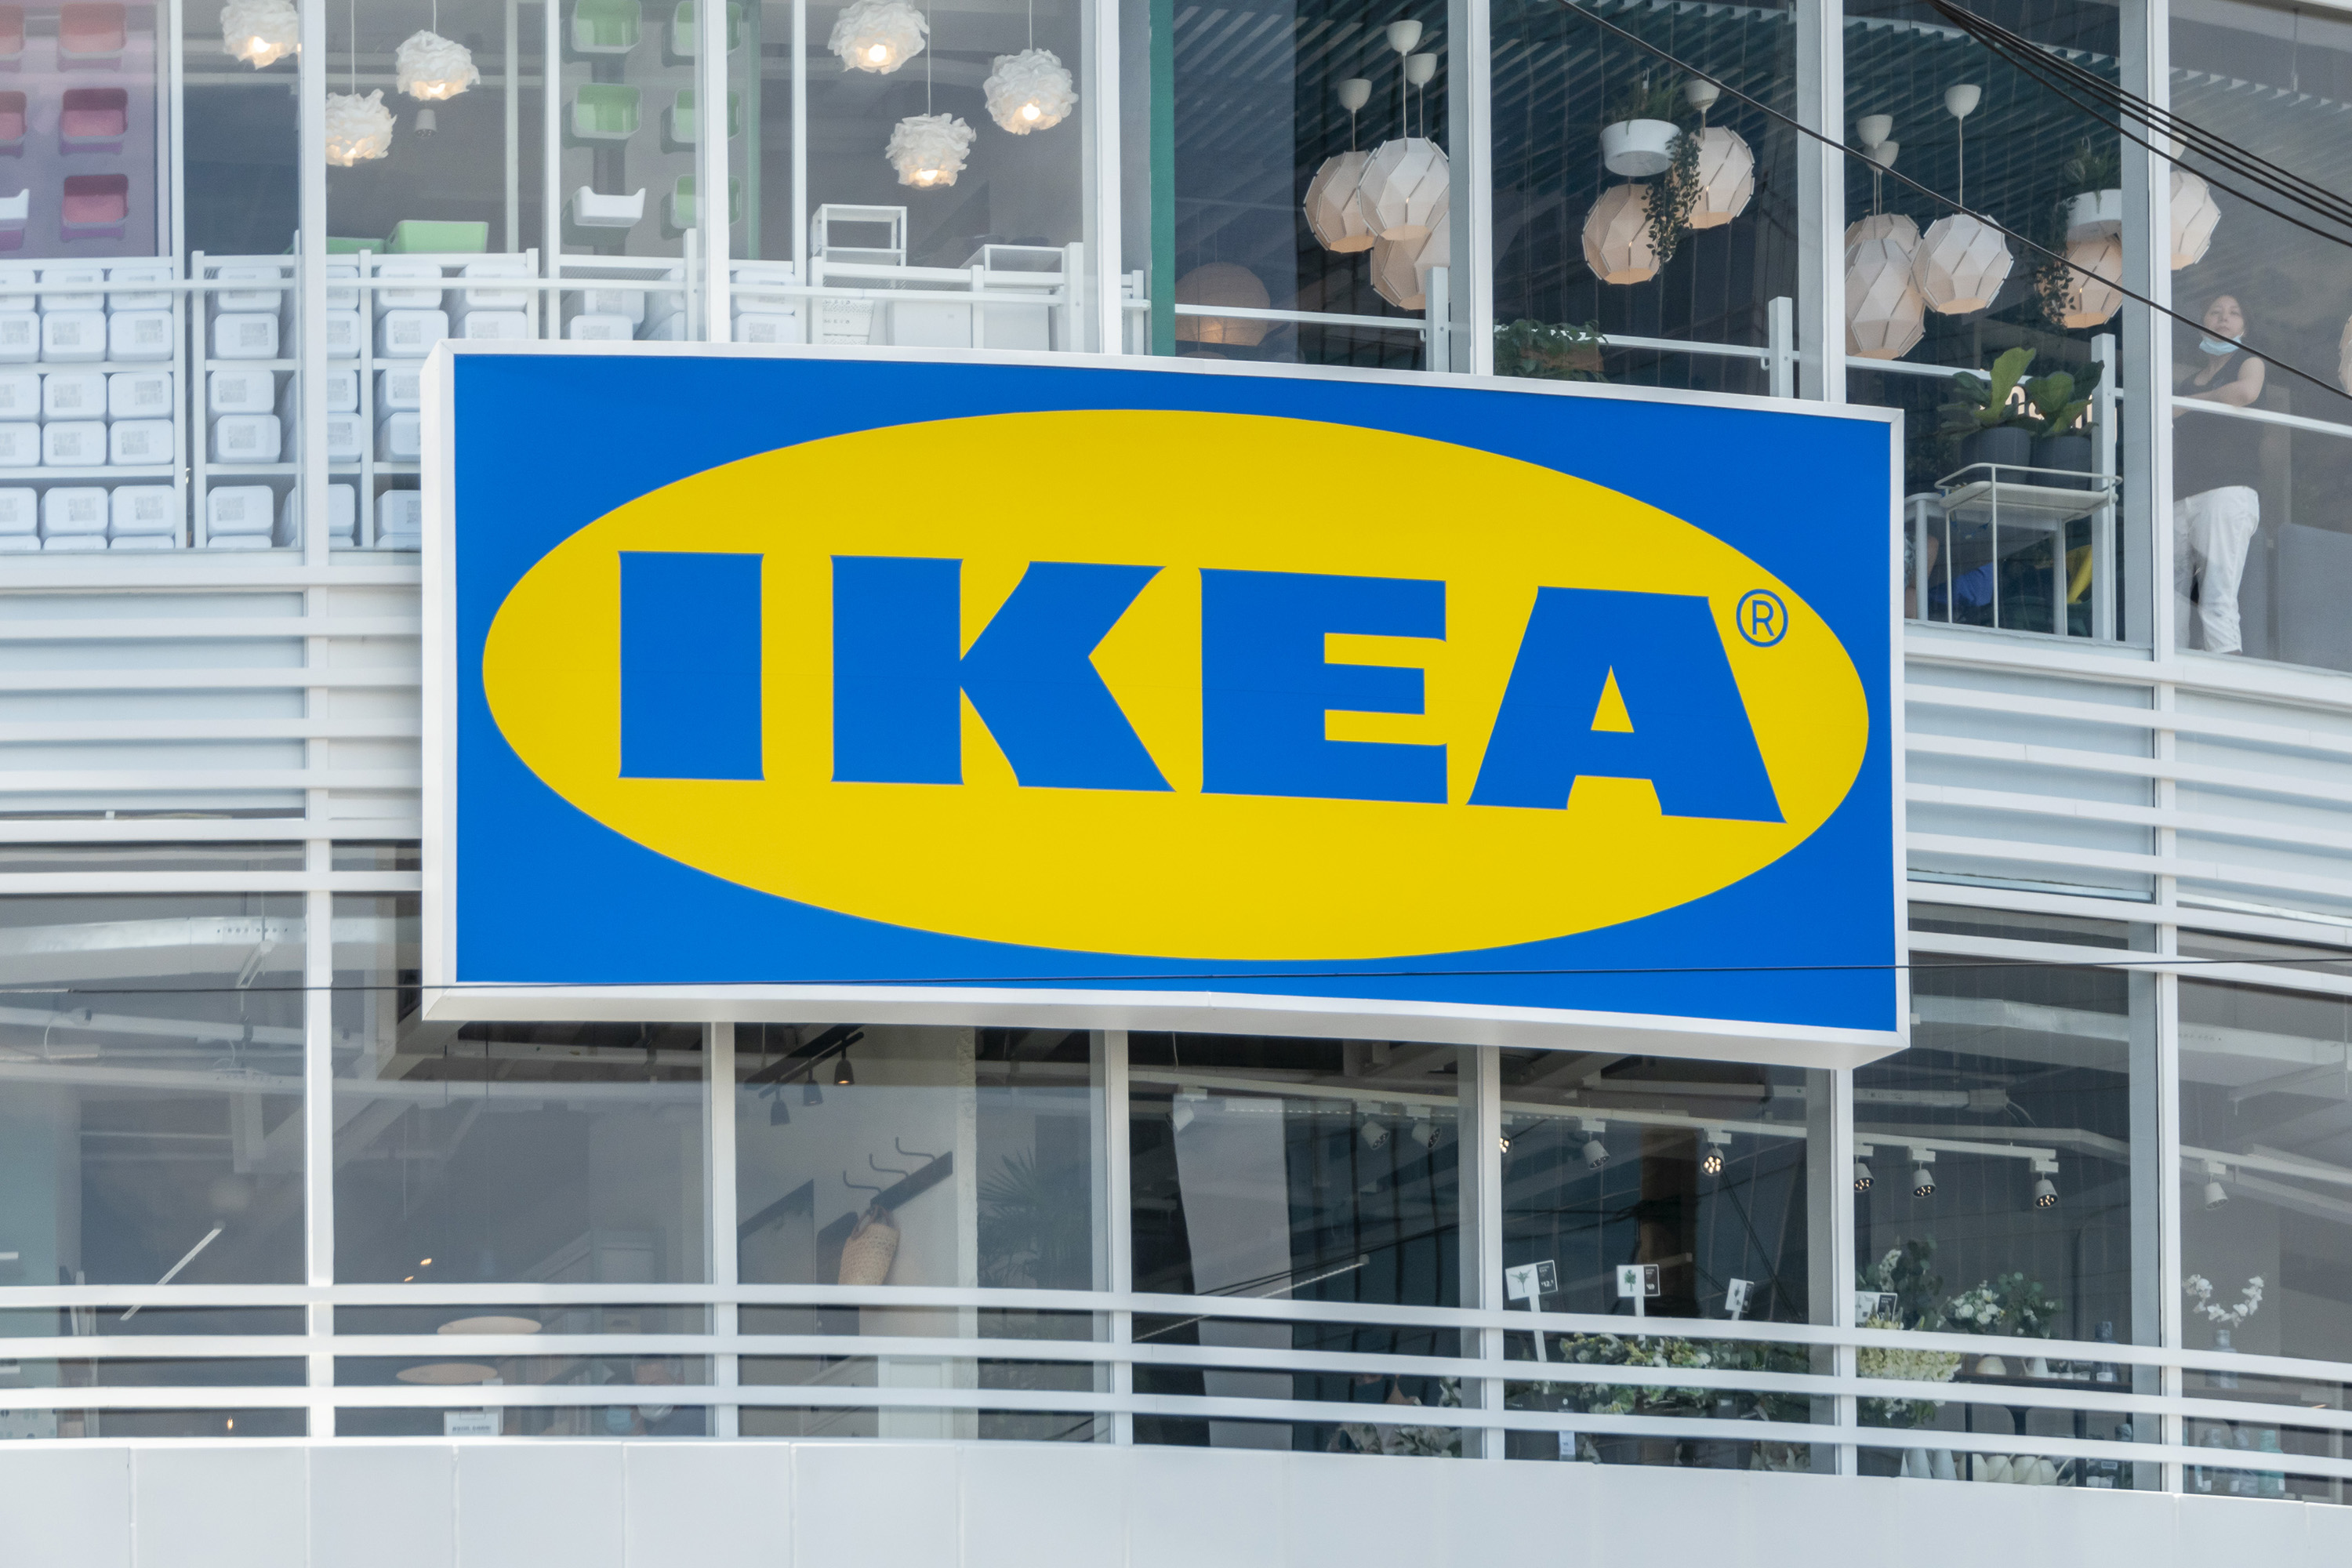 ikea expects sales to bounce back after 2020 slowdown